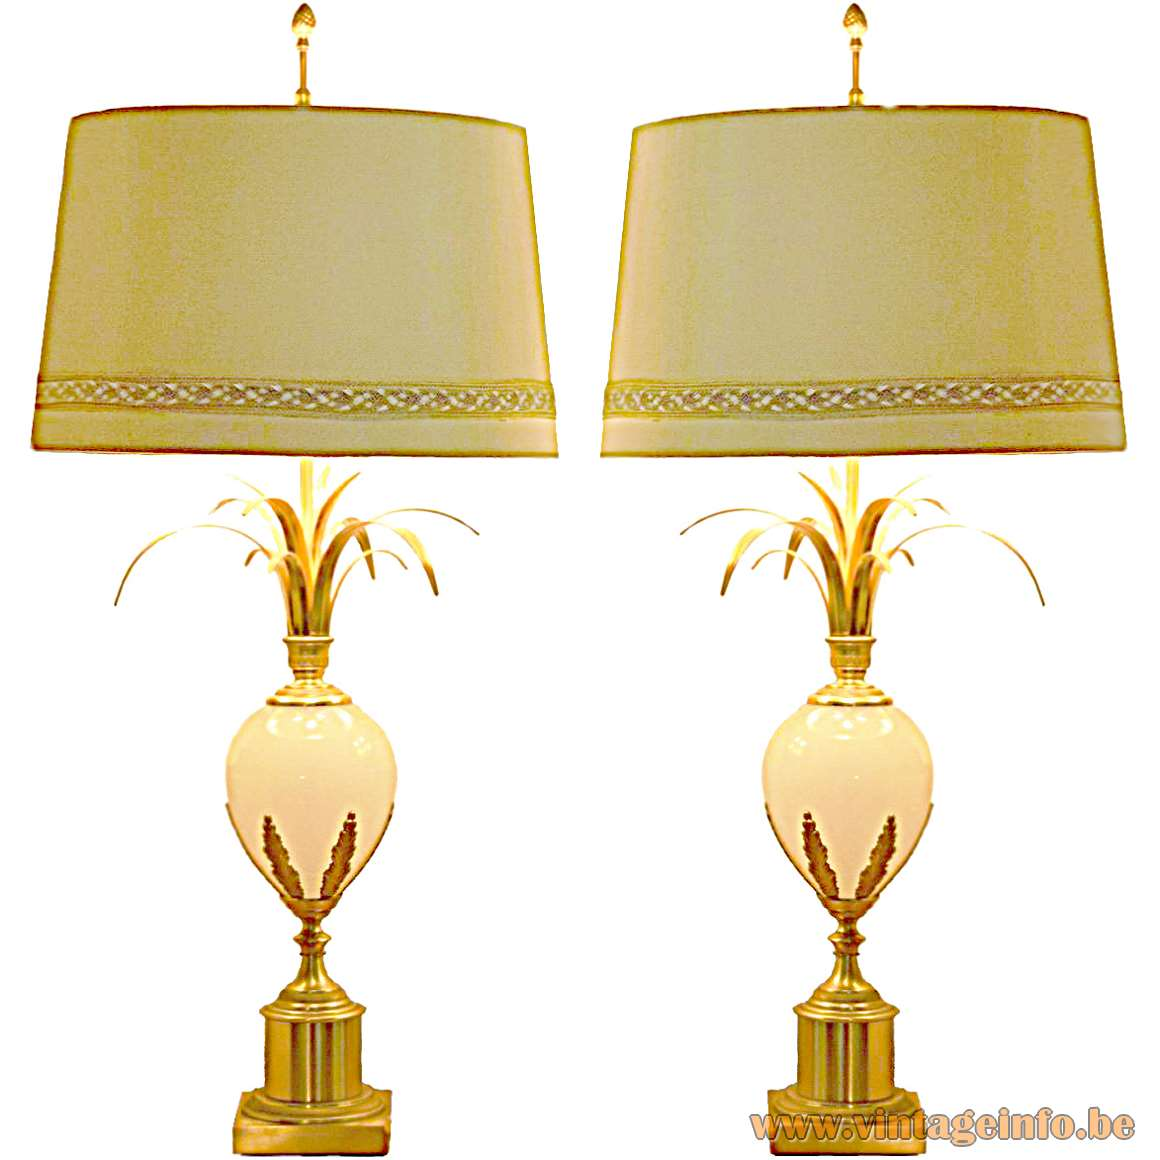 Boulanger Reed Table Lamps - Boulanger Ostrich Egg Table Lamps